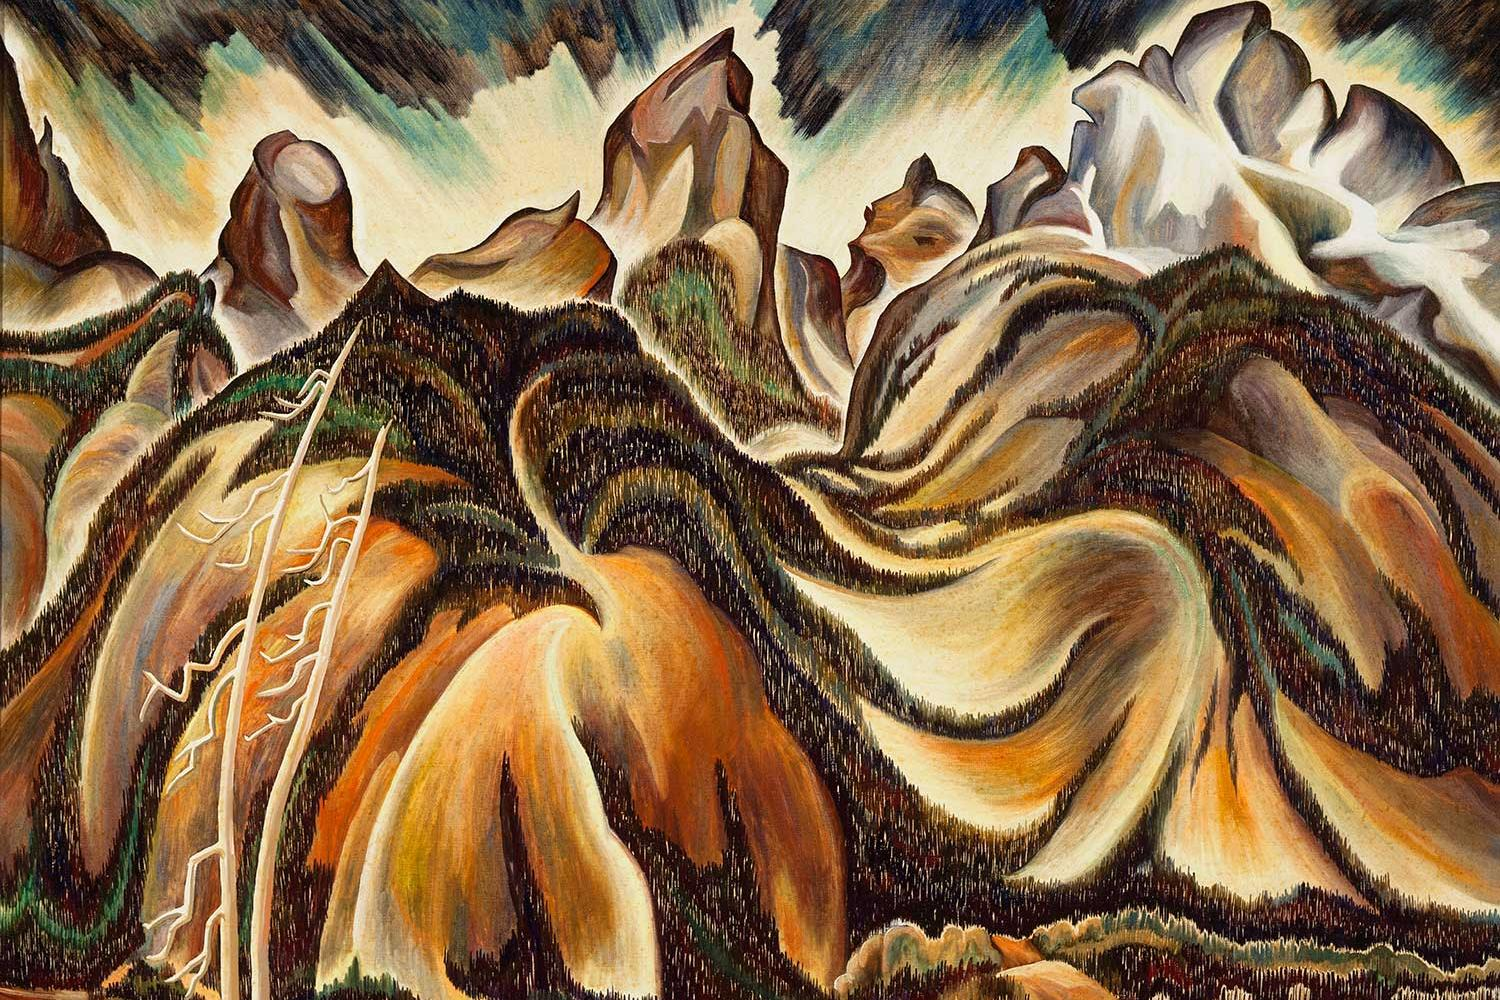 highly stylized painting of the Grand Tetons